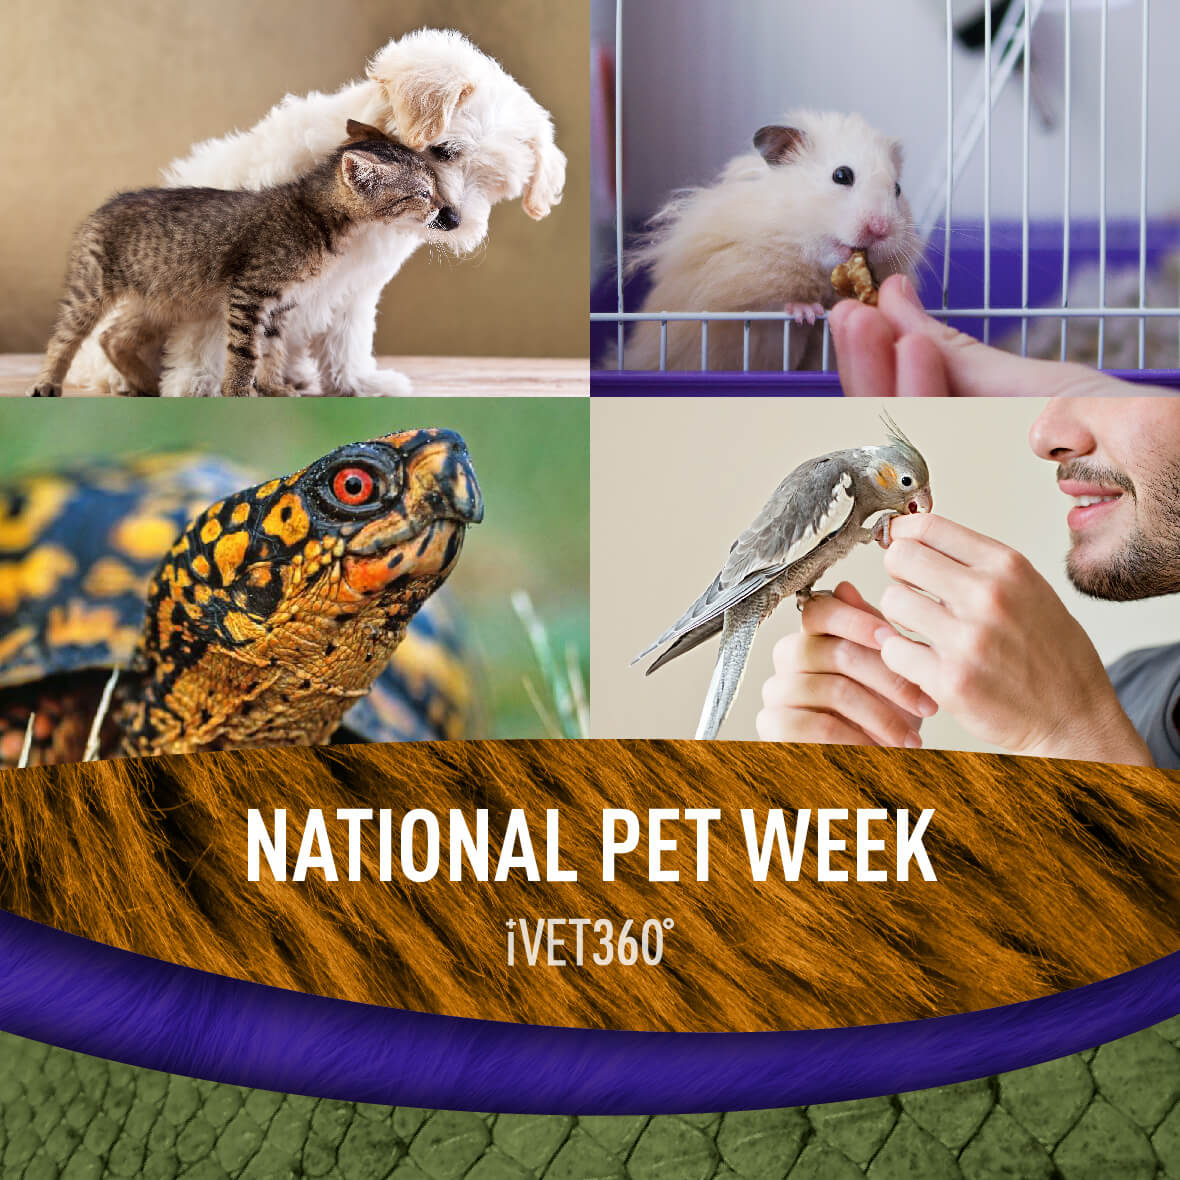 National Pet Week Pet holiday, Pets, Animals